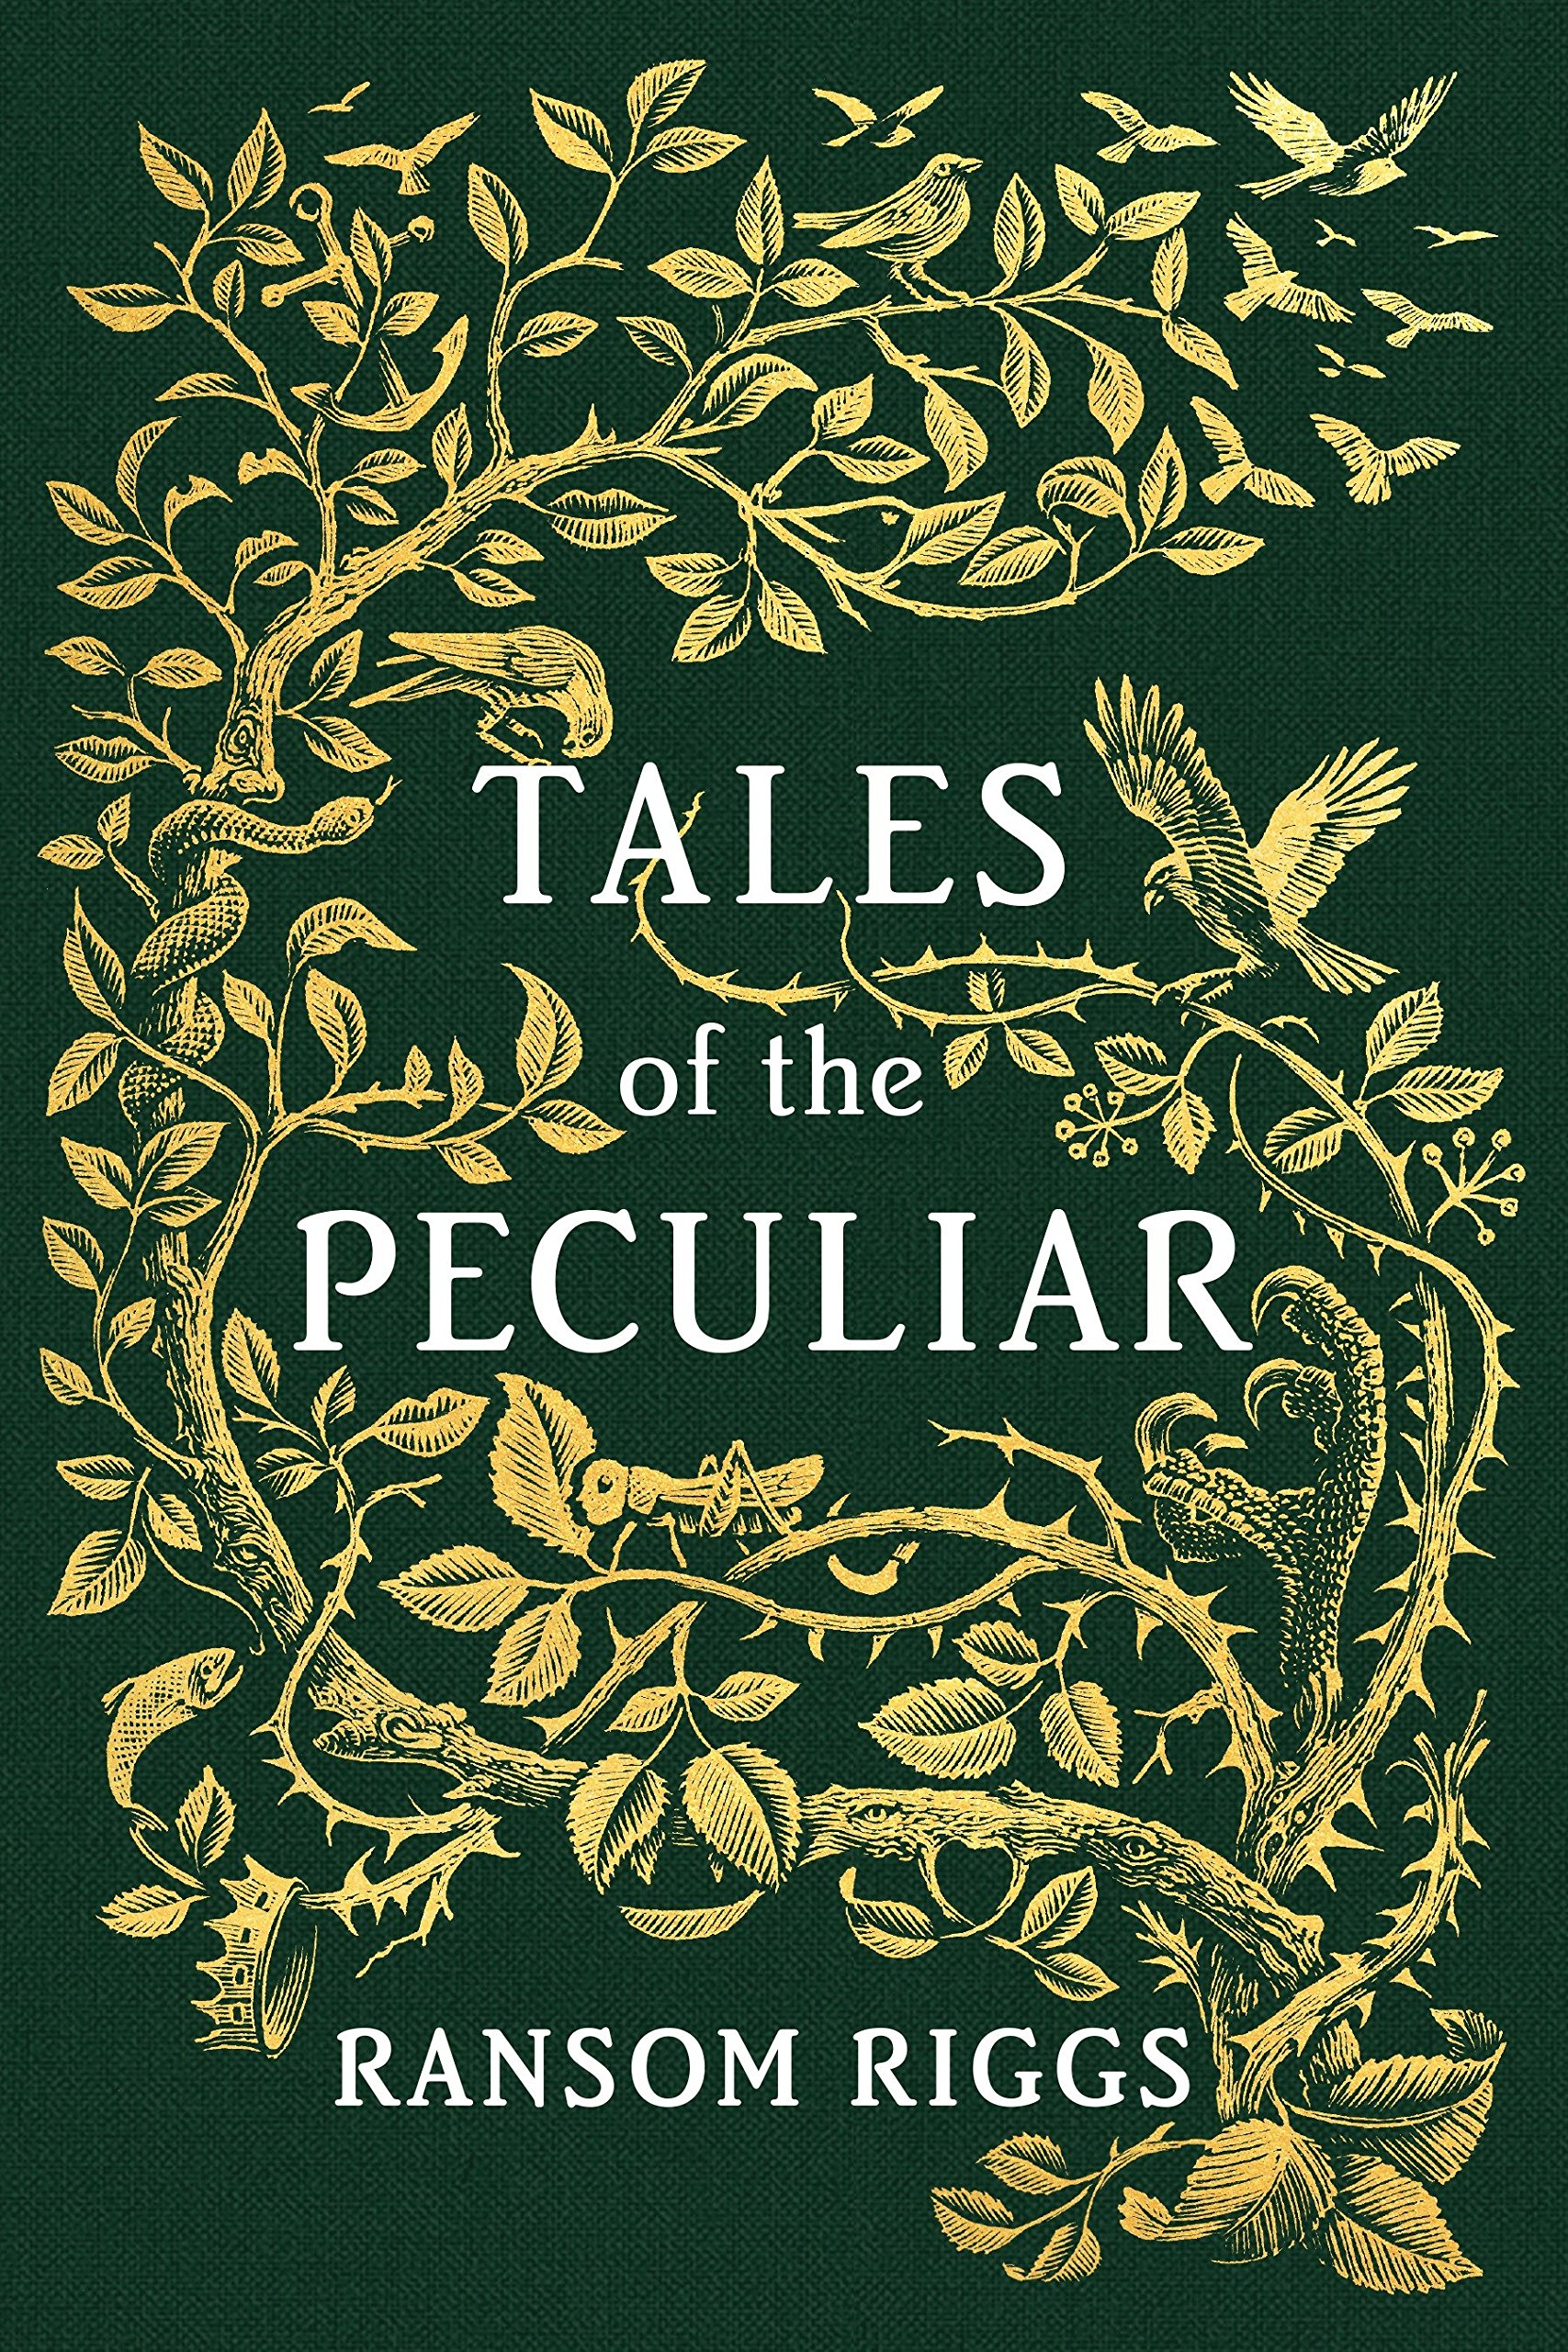 Amazon.com: Tales of the Peculiar (9780399538537): Riggs, Ransom ...